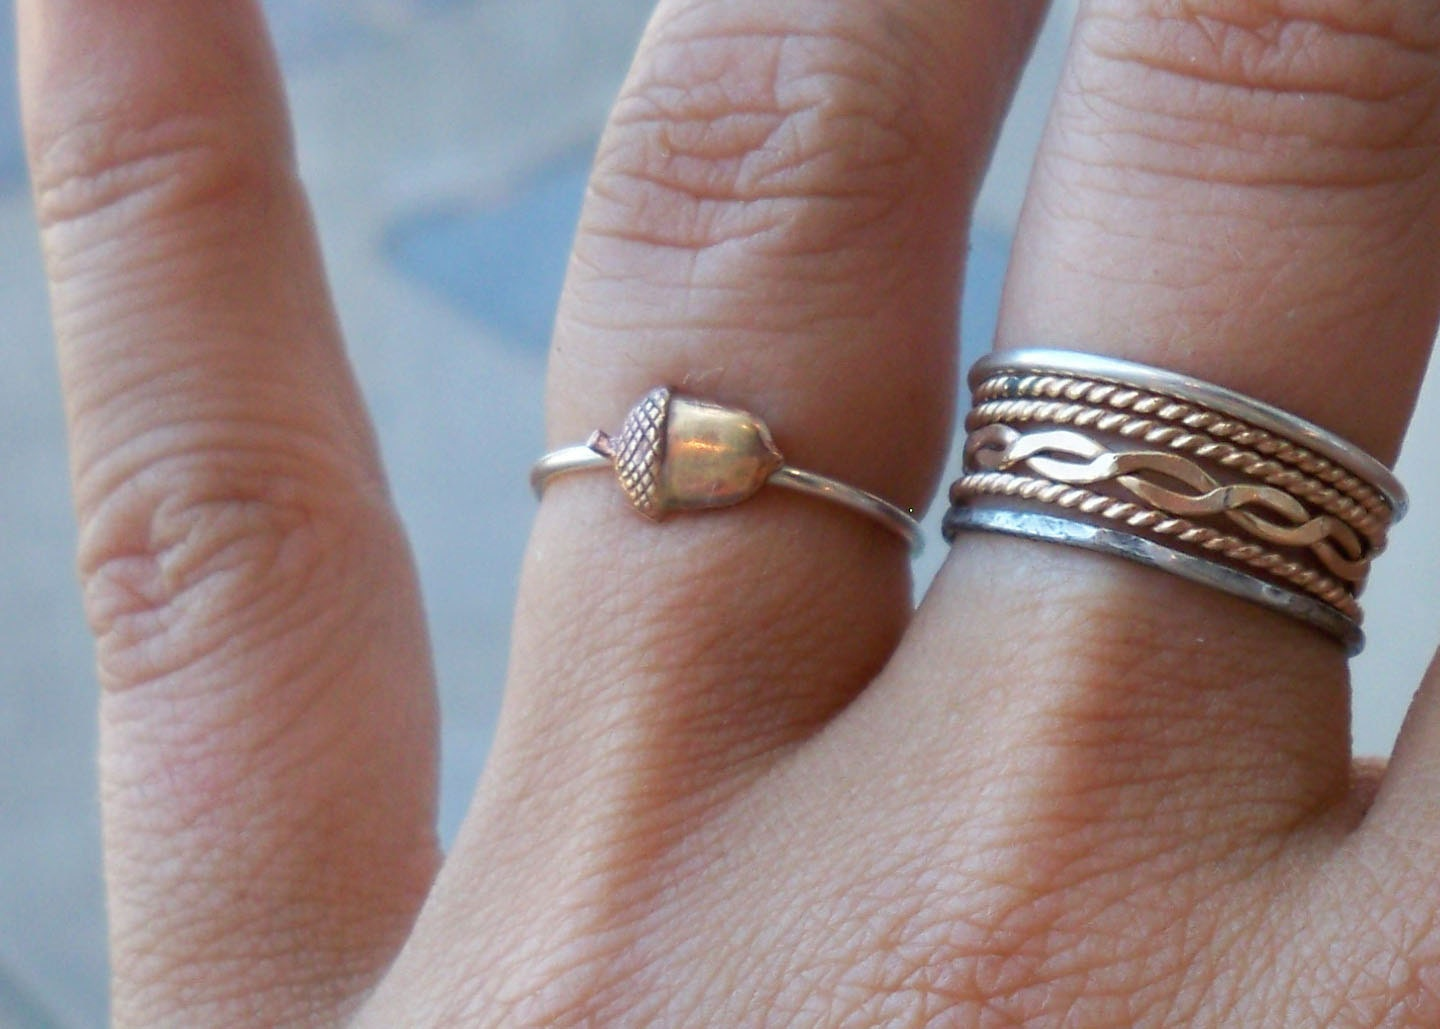 Sale!!! Tiny Little Acorn Sterling Silver Stacking Ring - Brass on Silver - custom made to order